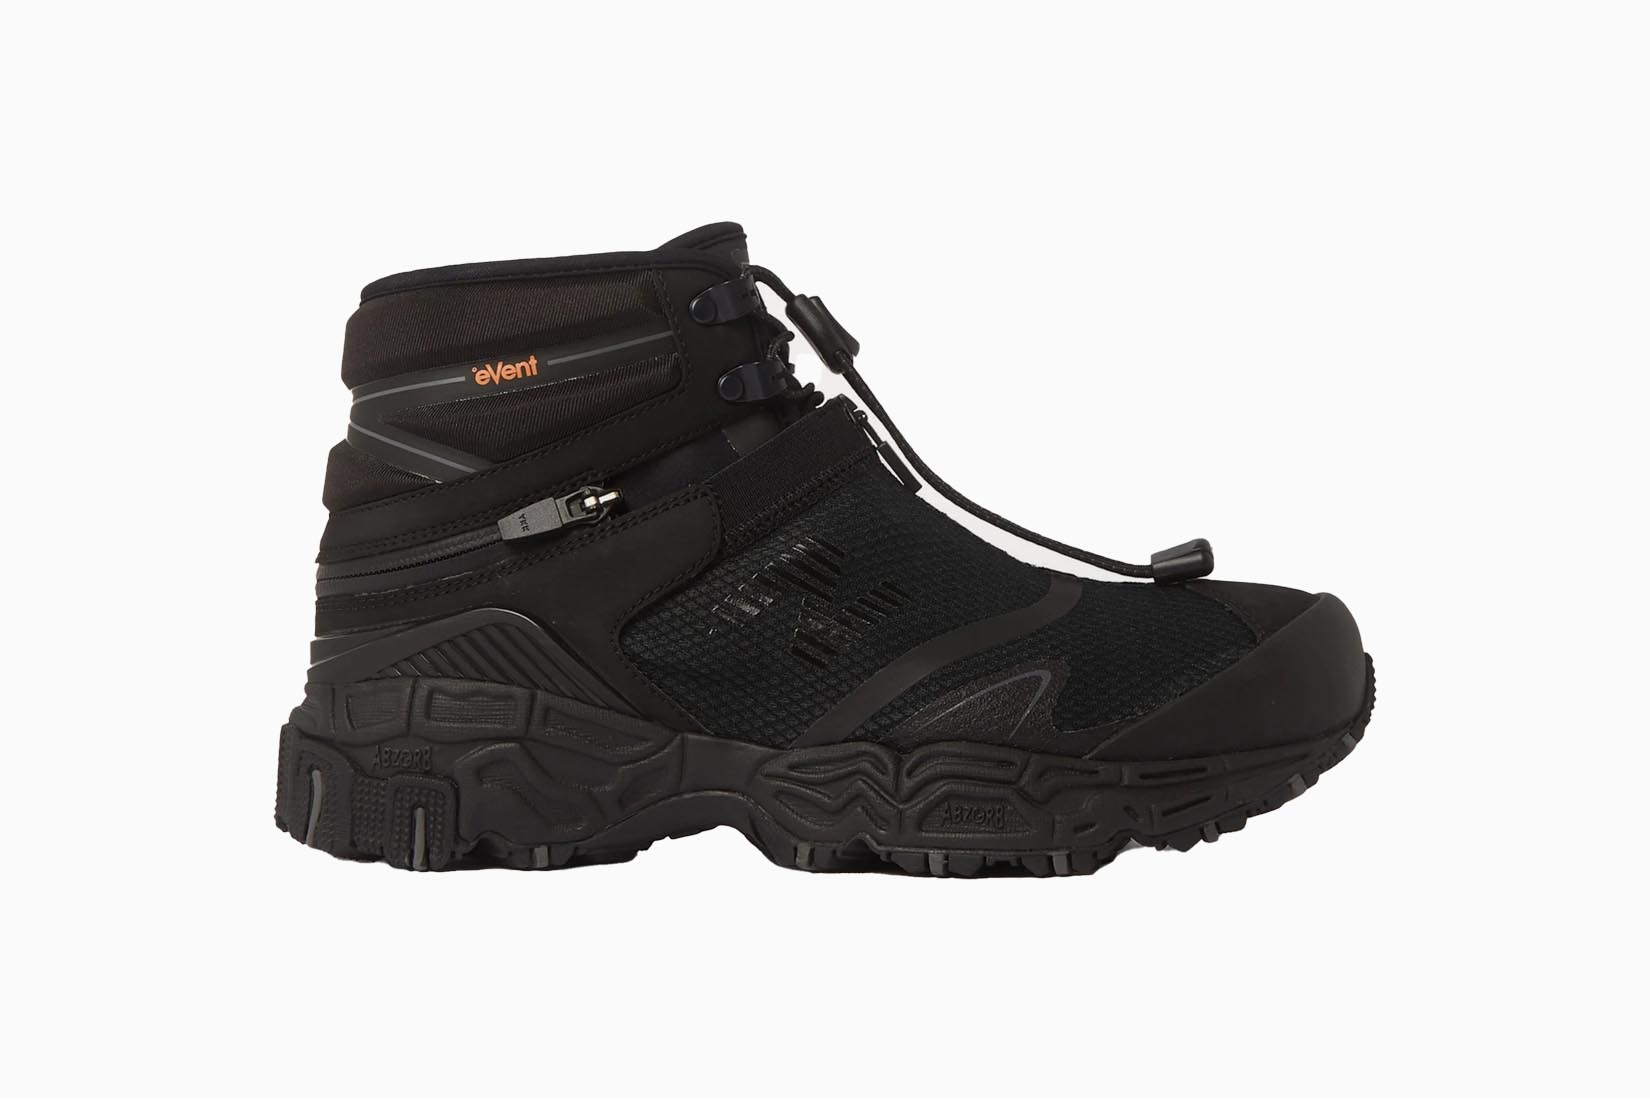 best boots men new balance 3 in 1 boots review Luxe Digital